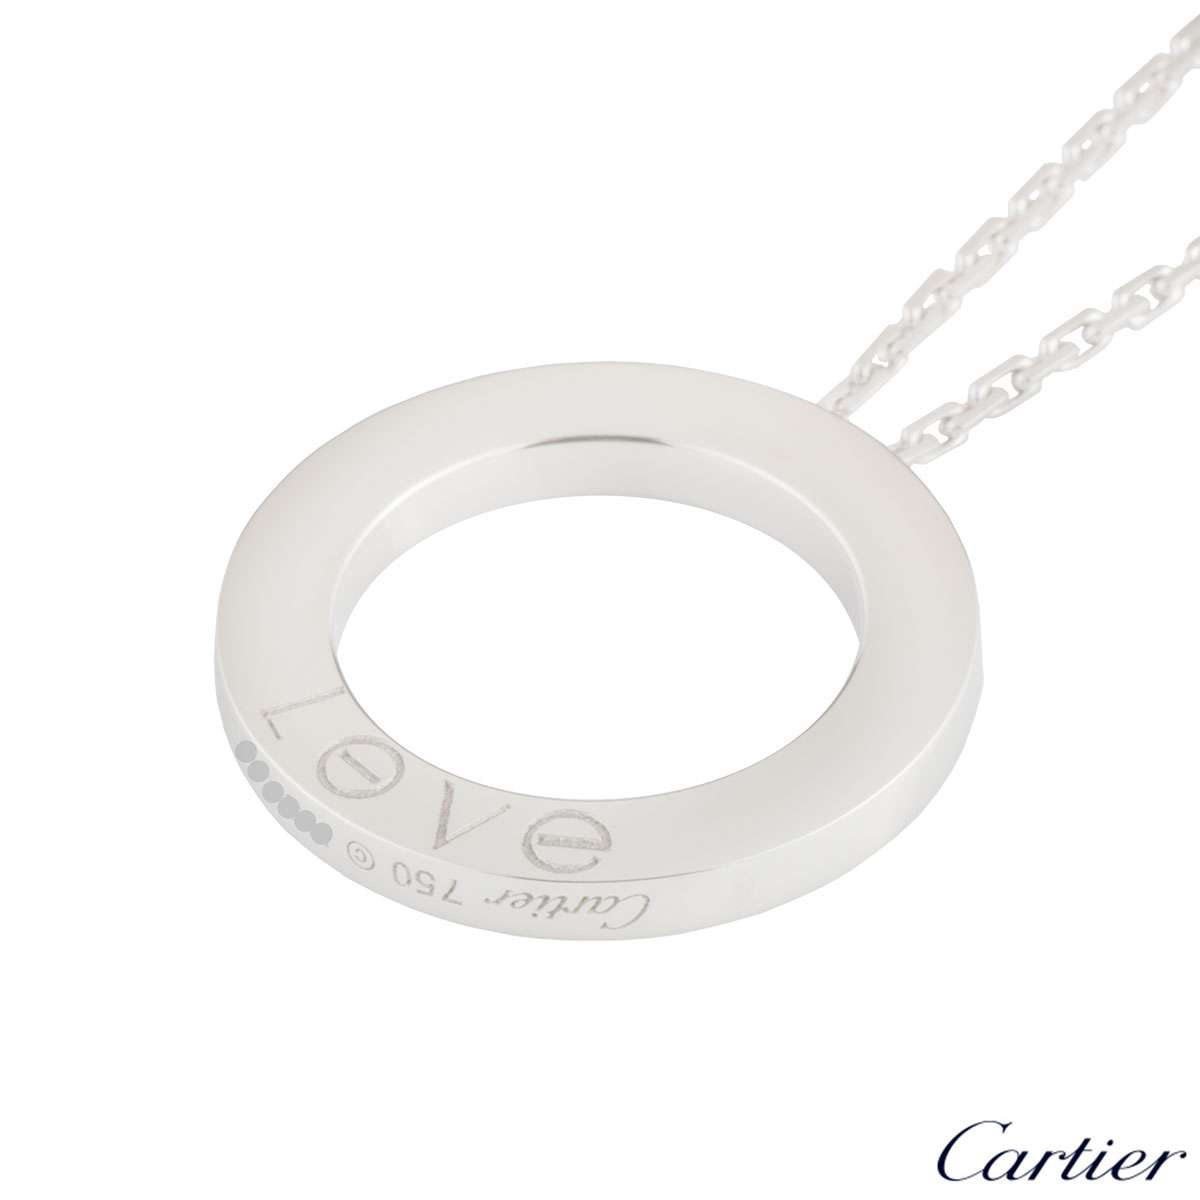 Cartier White Gold Love Necklace B7014300